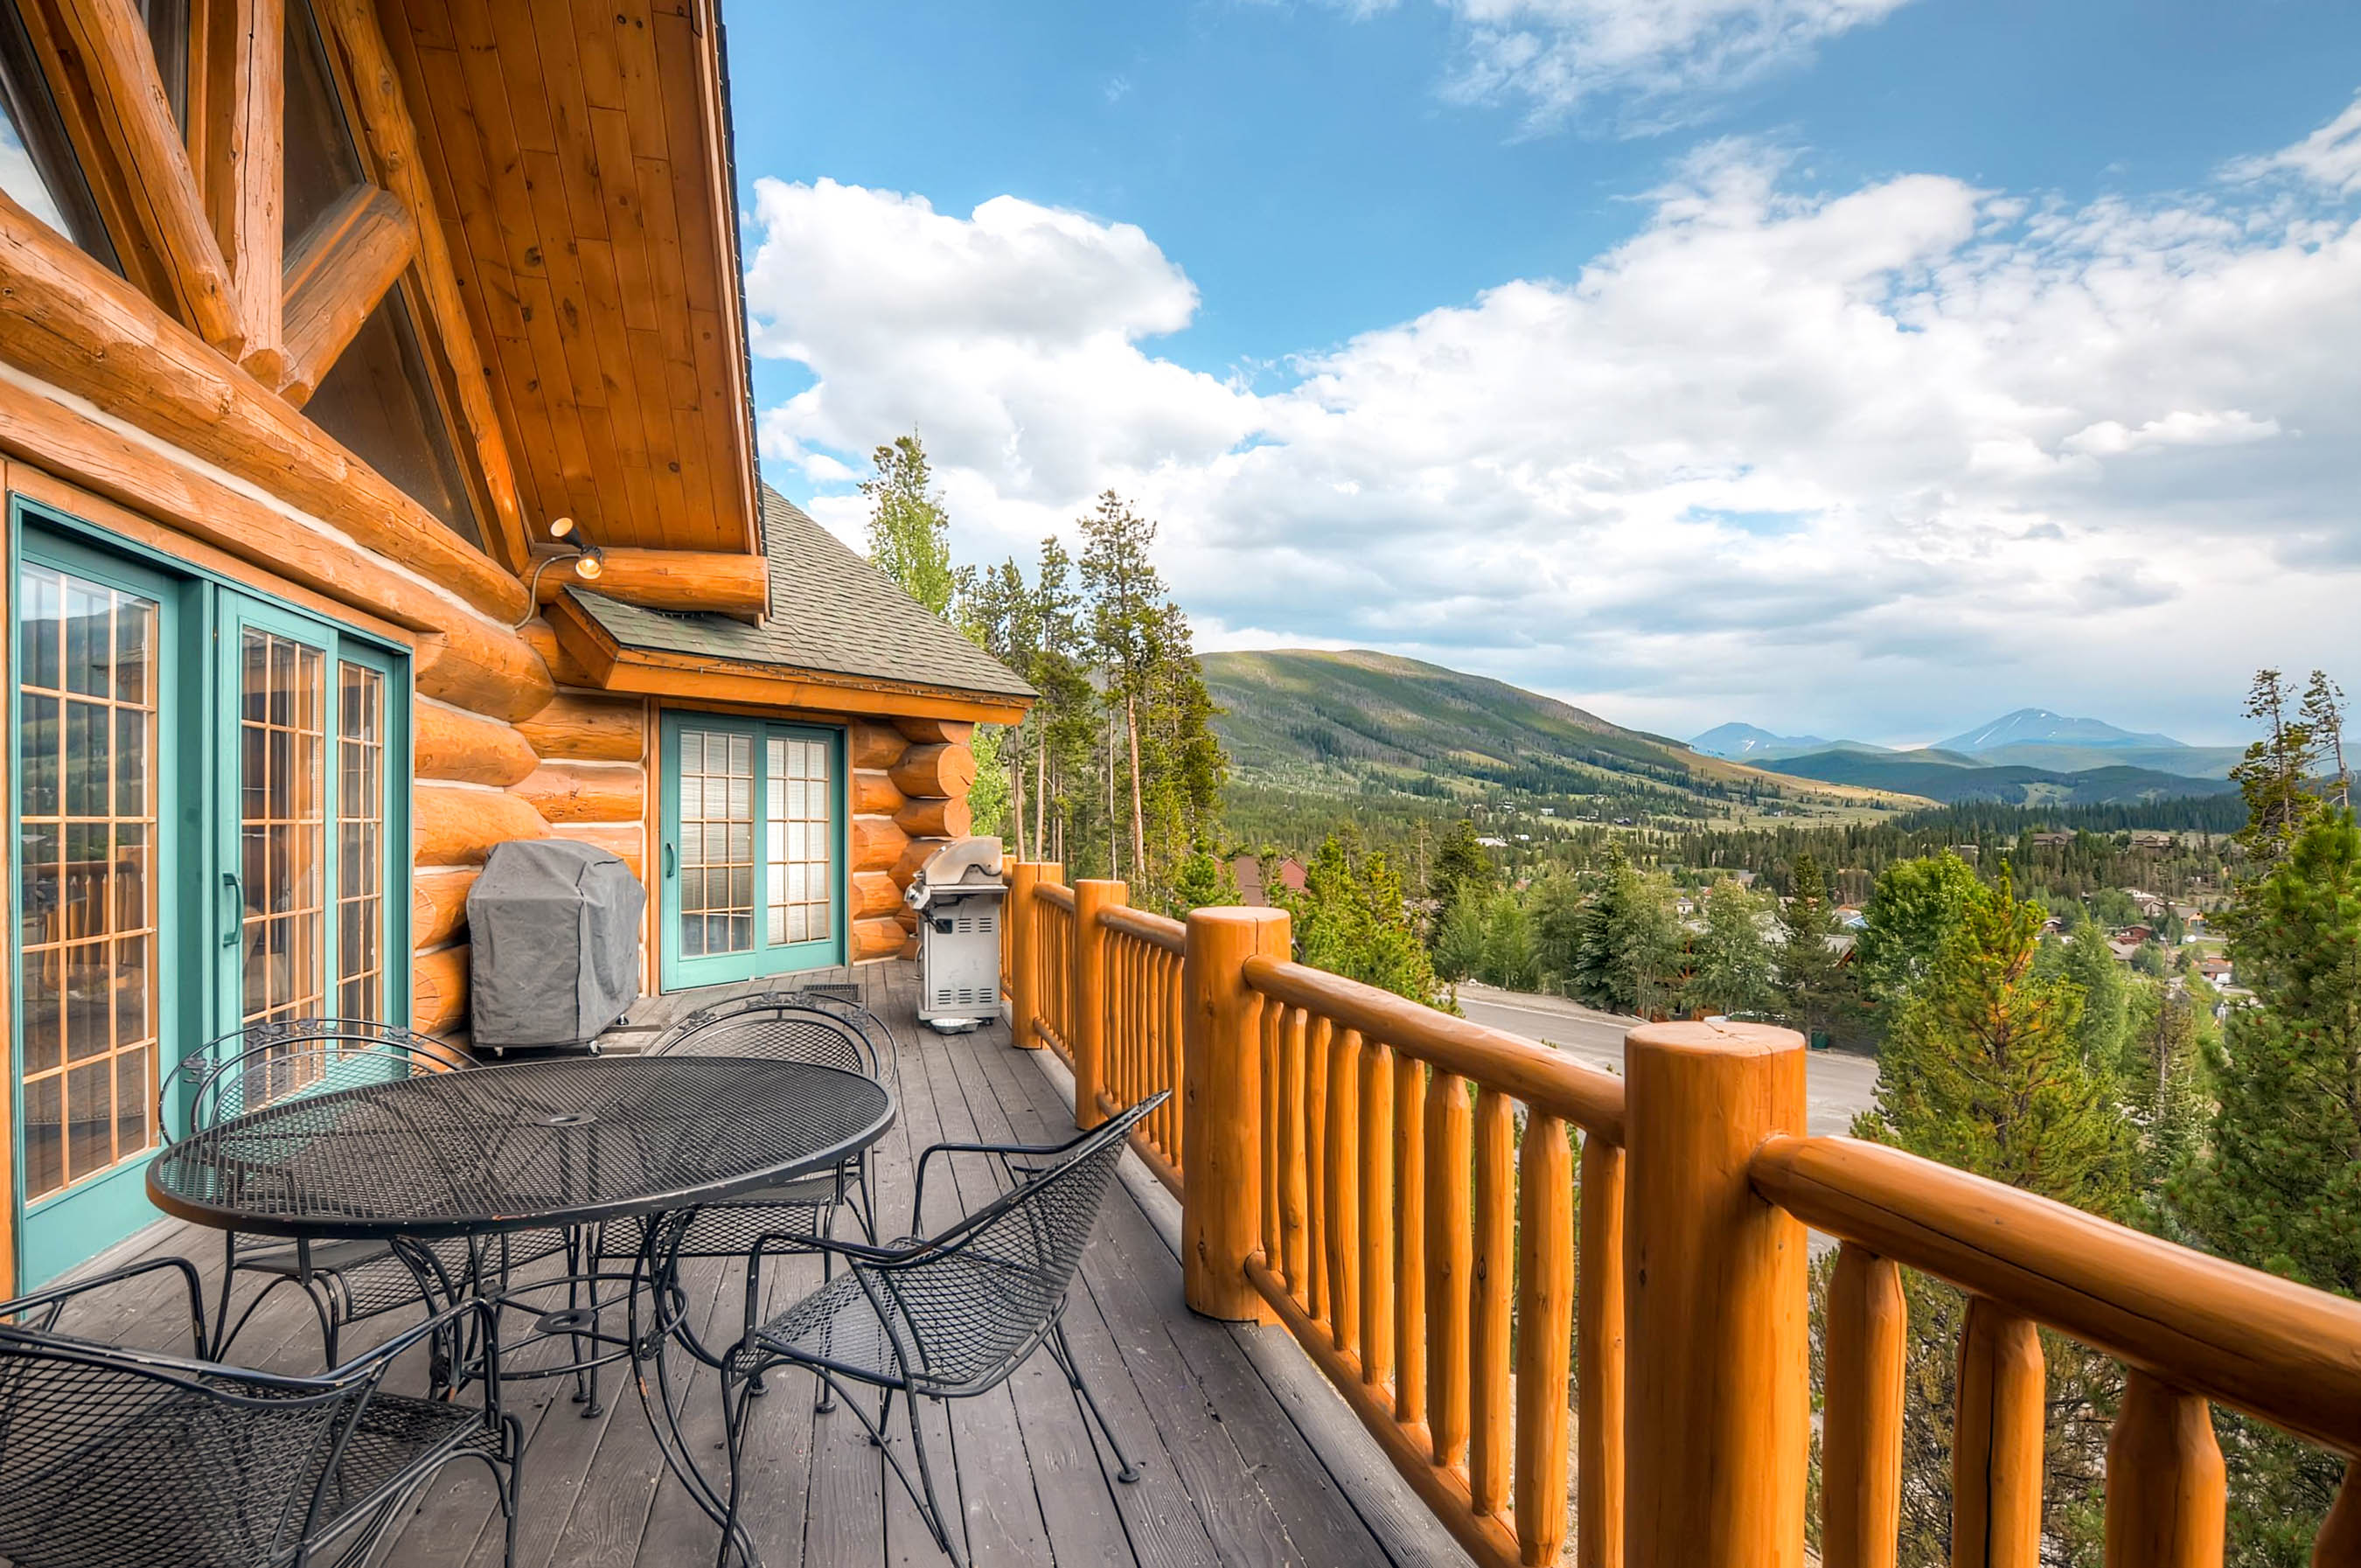 reservation of ranging areas remote log stations com all to eight cabin have good mytatuaggi refurbished are rental photo only in rentals by x historic from we located guard colorado cabins